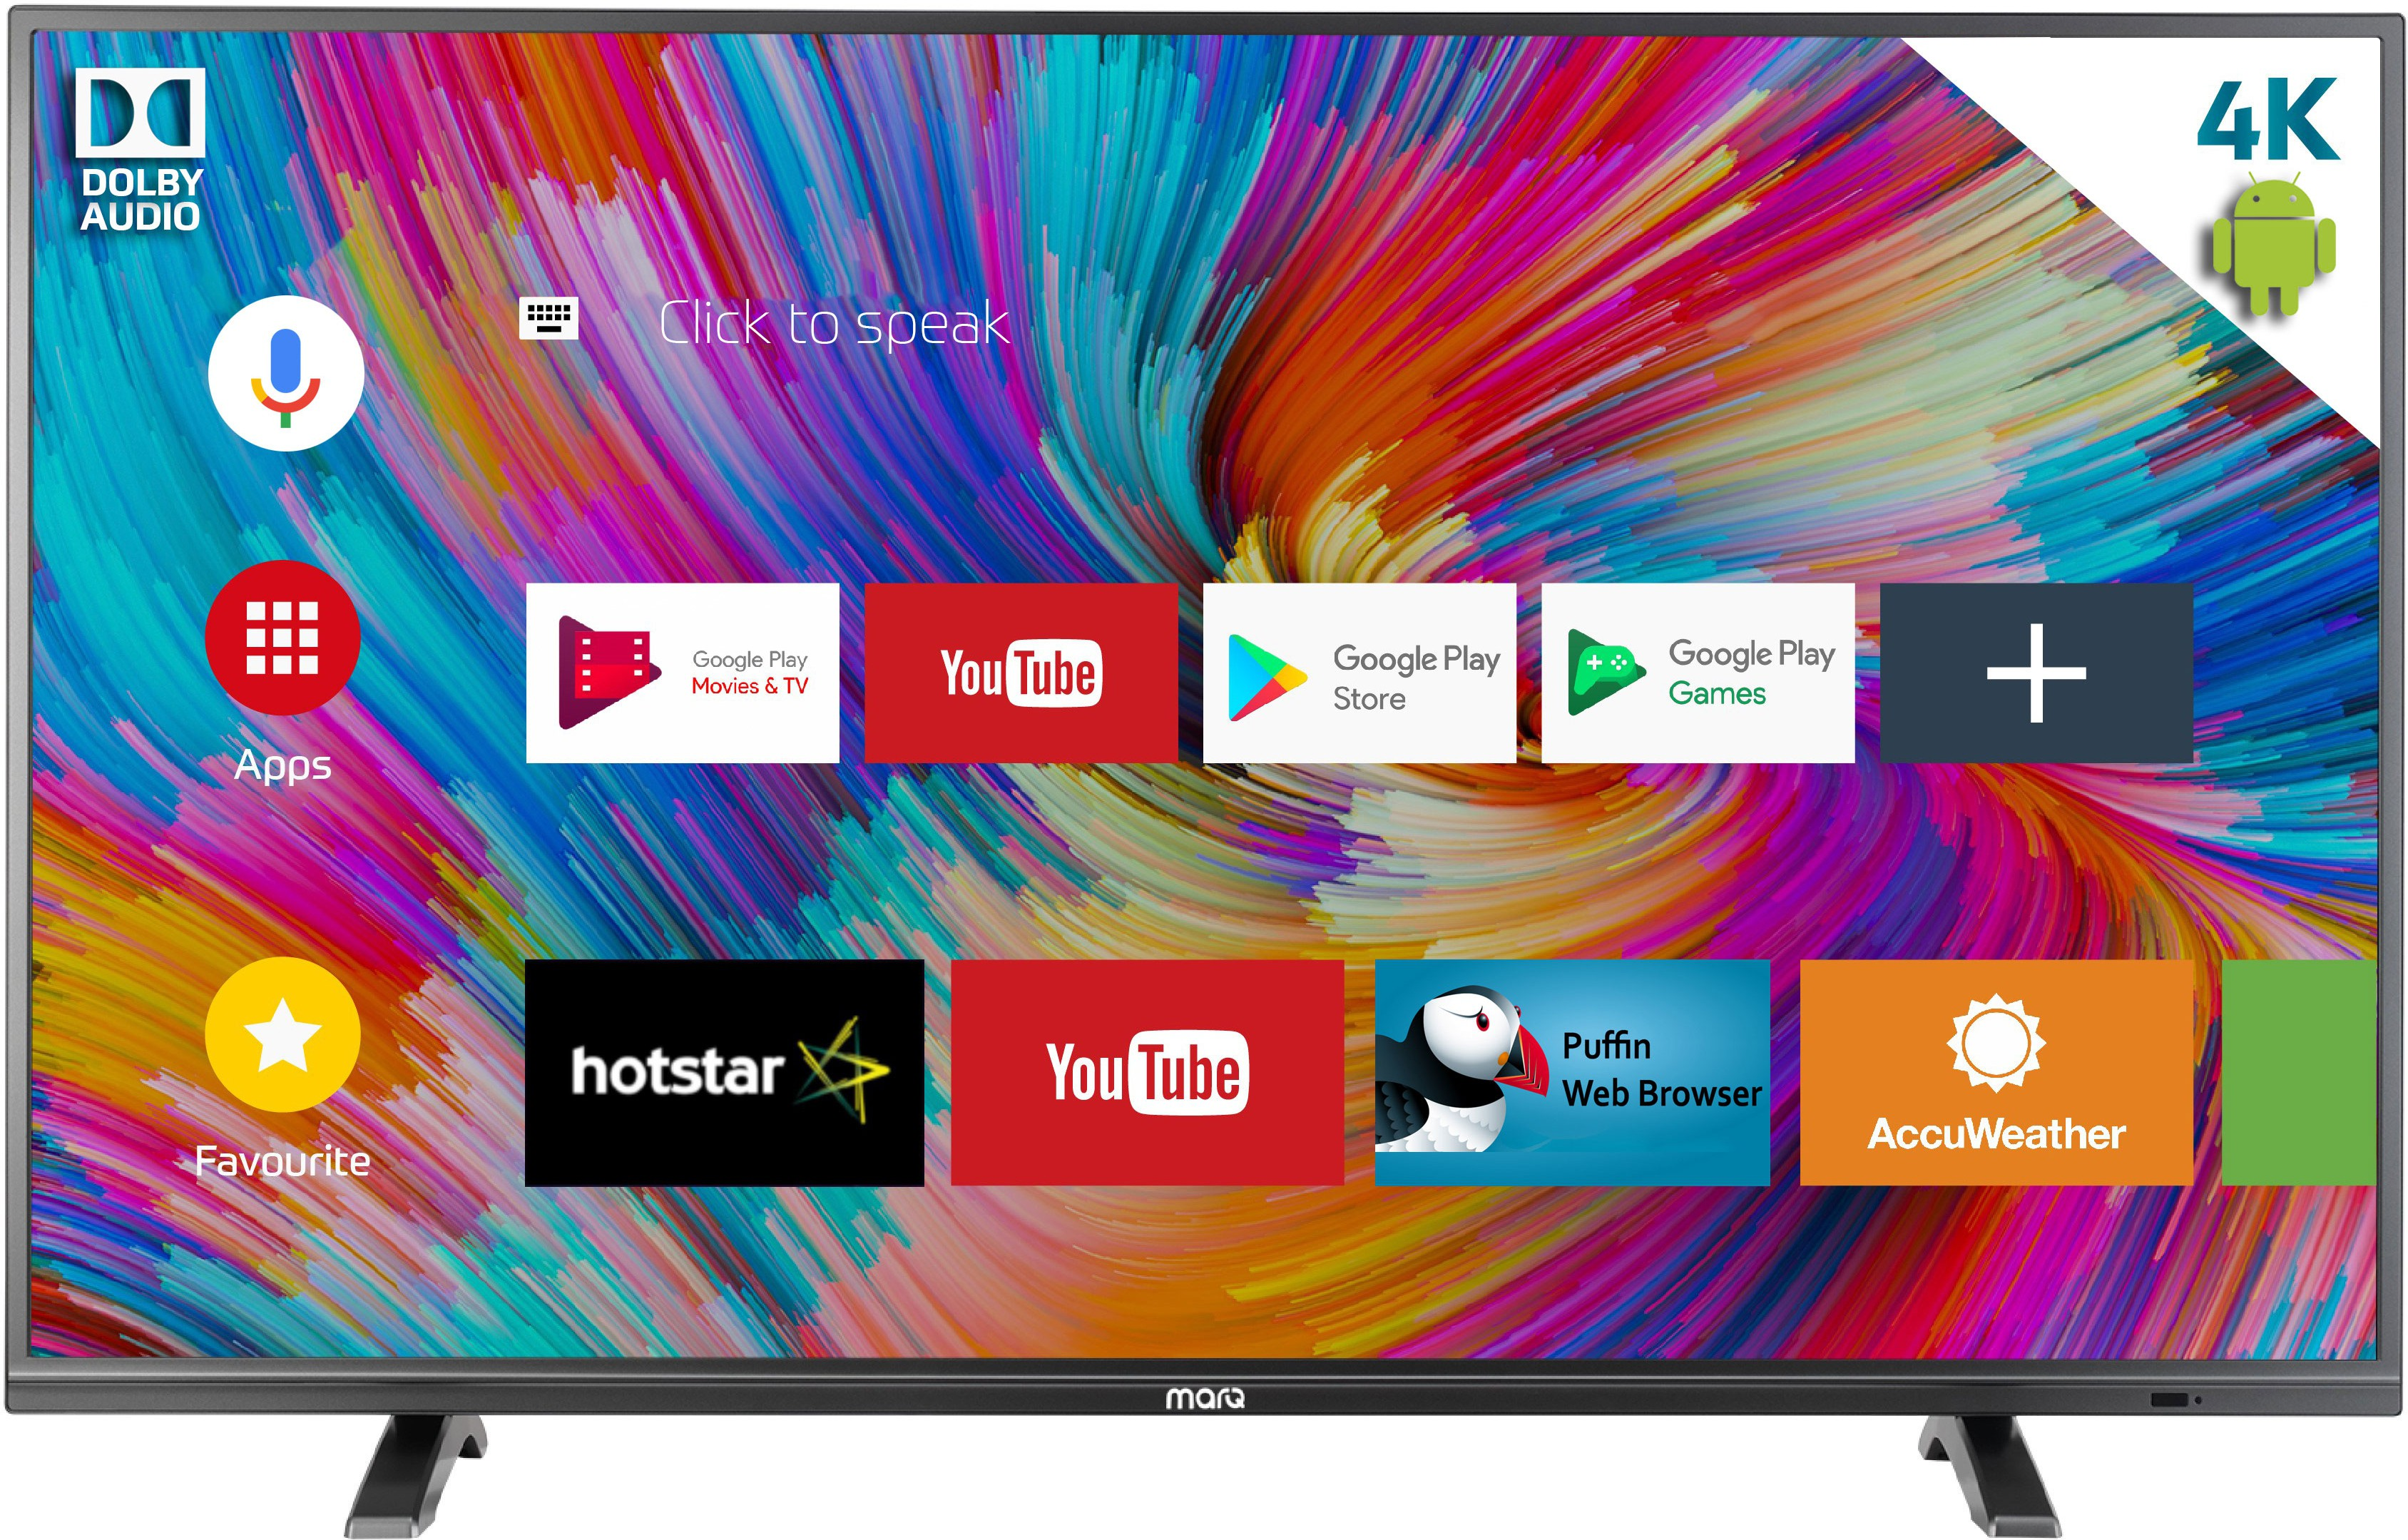 MarQ by Flipkart Dolby Certified Android (55 inch) Ultra HD (4K) Smart LED TV Image